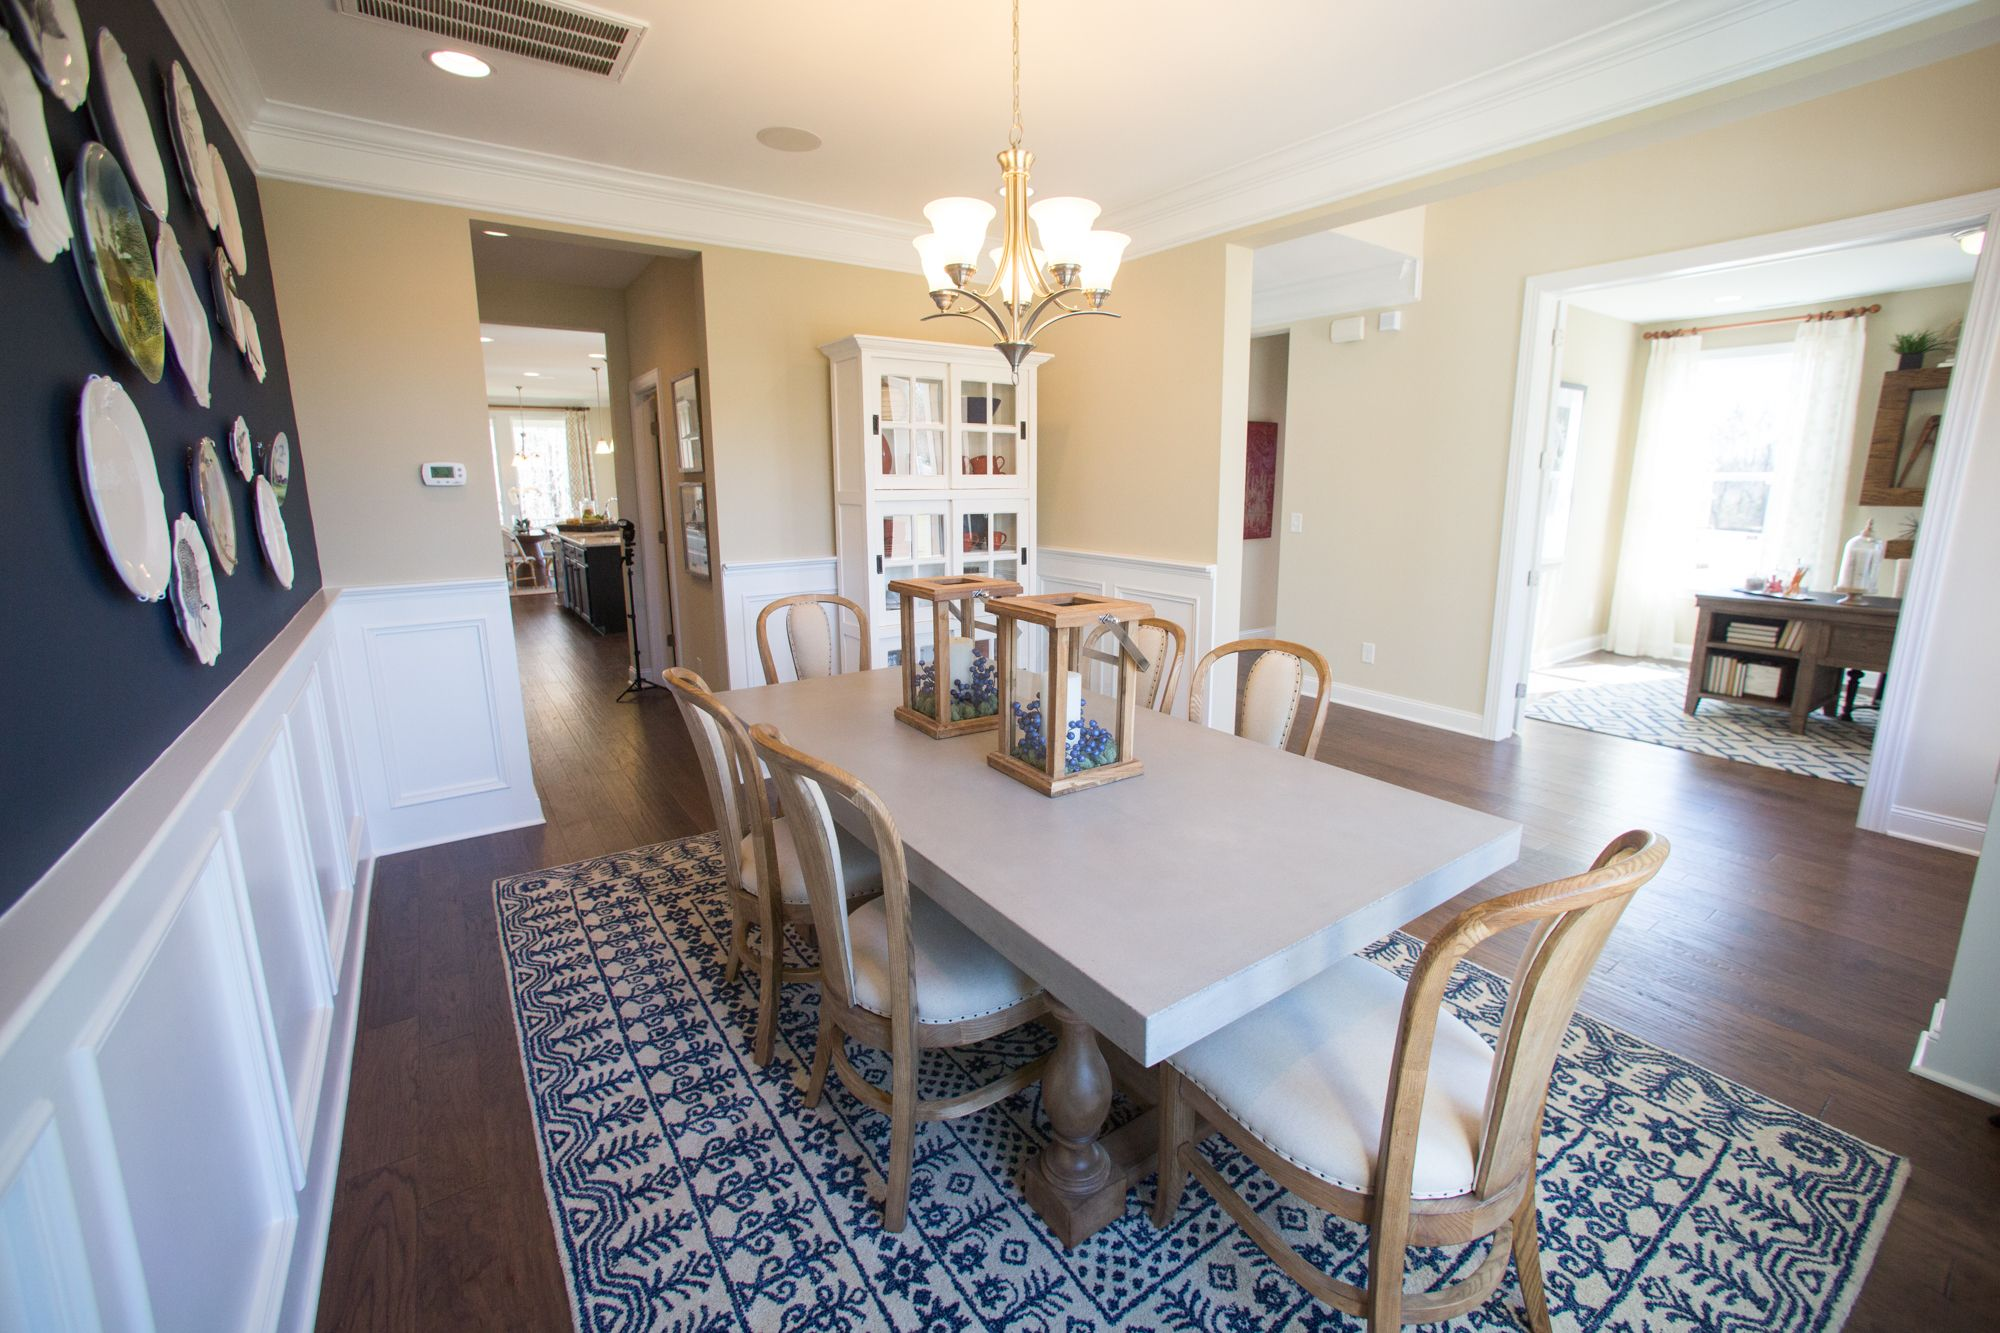 Plenty of space for formal dining and living areas! Find